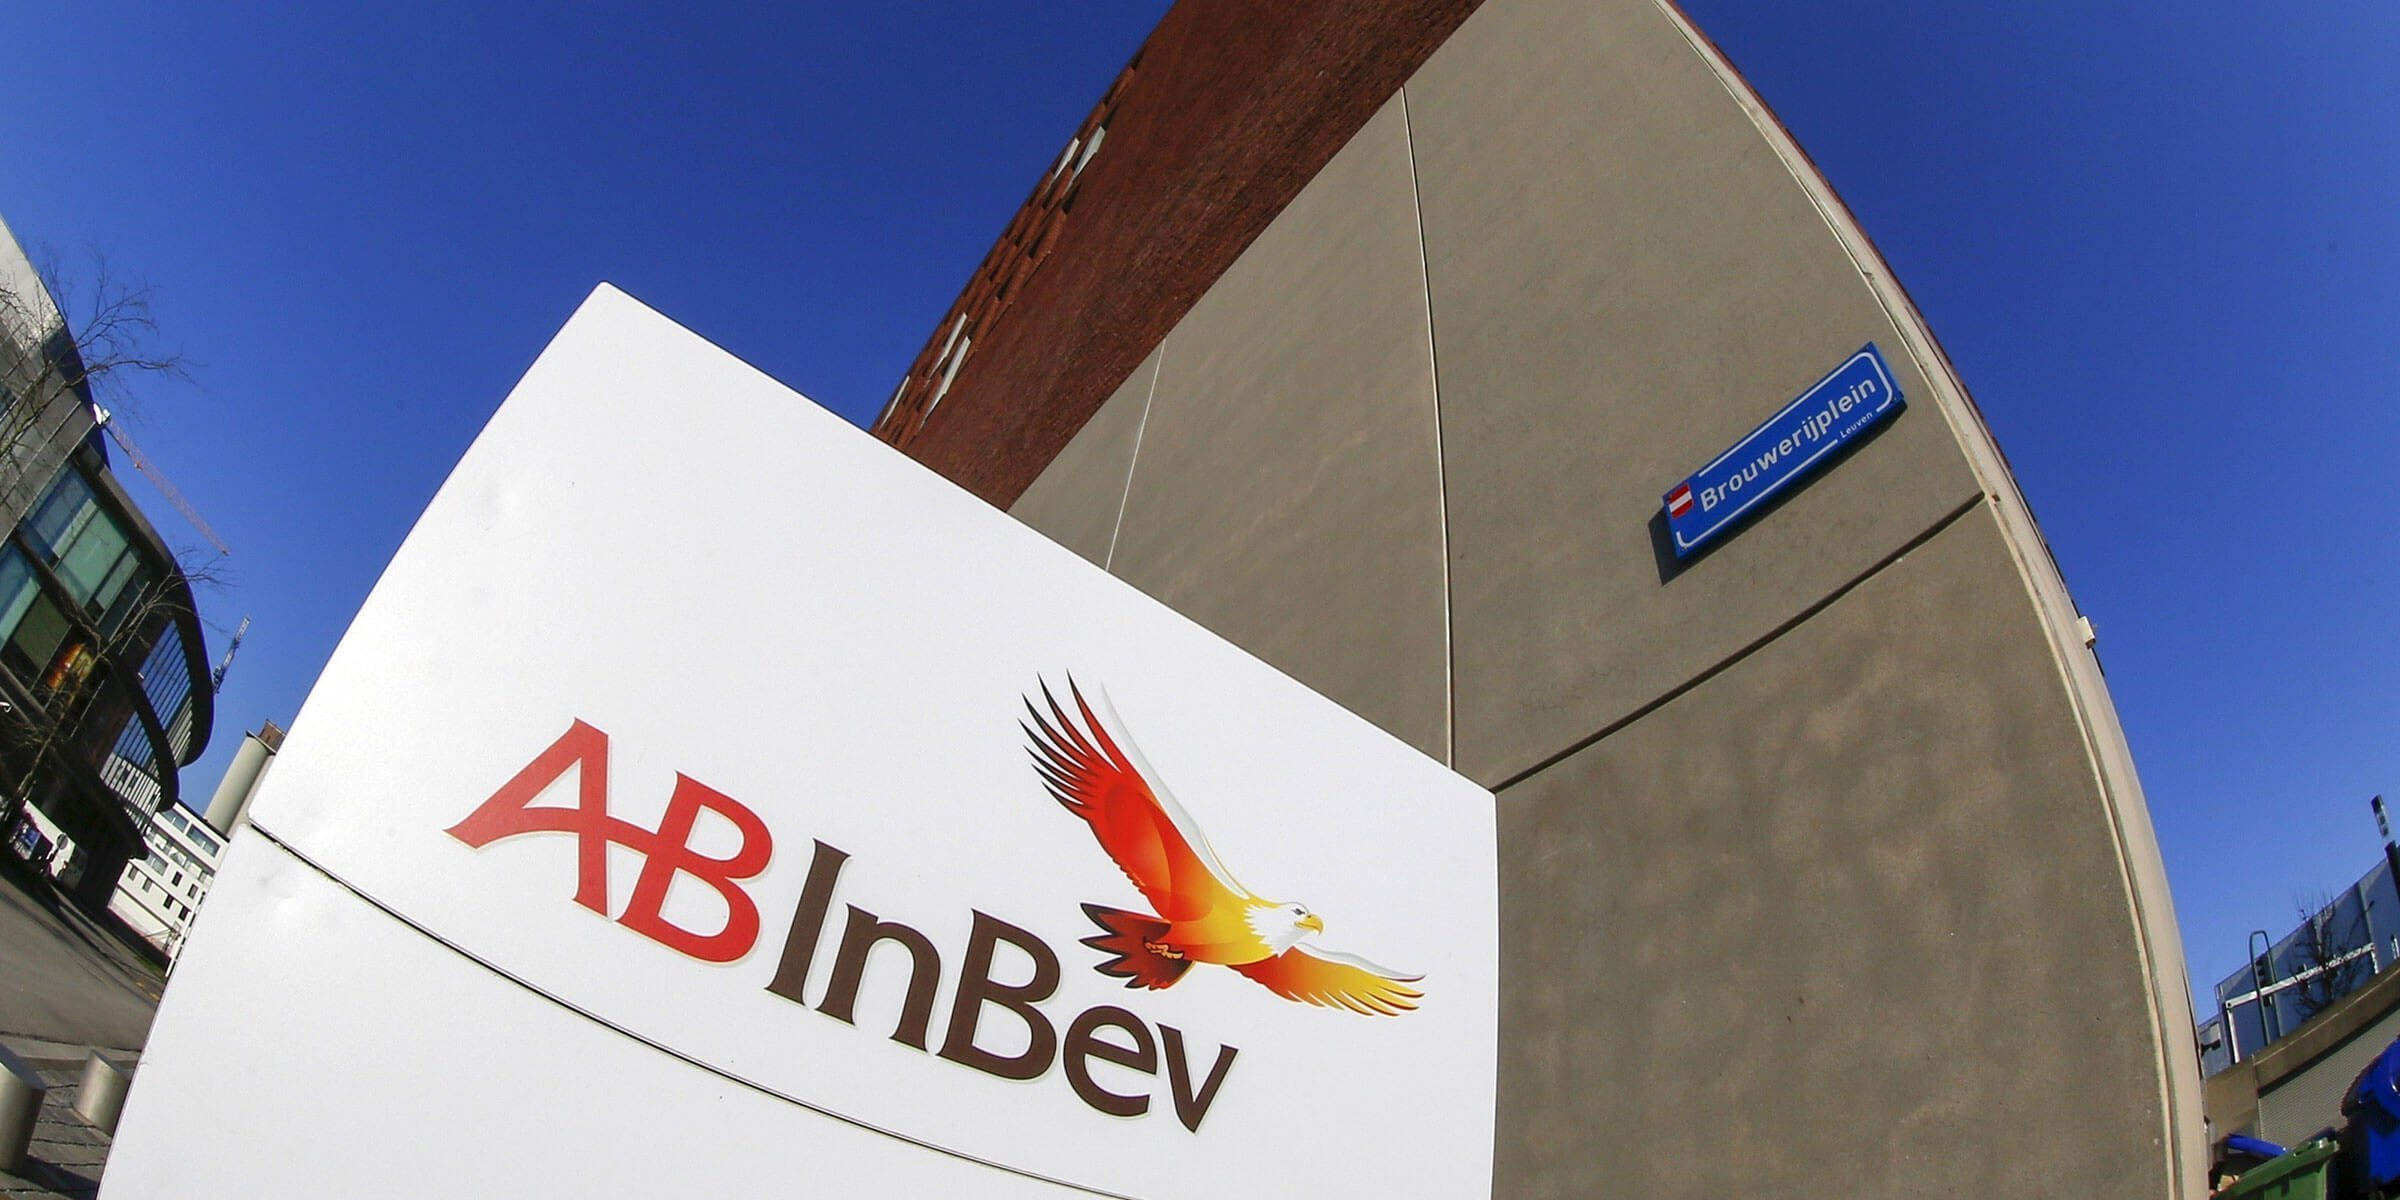 Corporate Office Building for Anheuser-Busch InBev